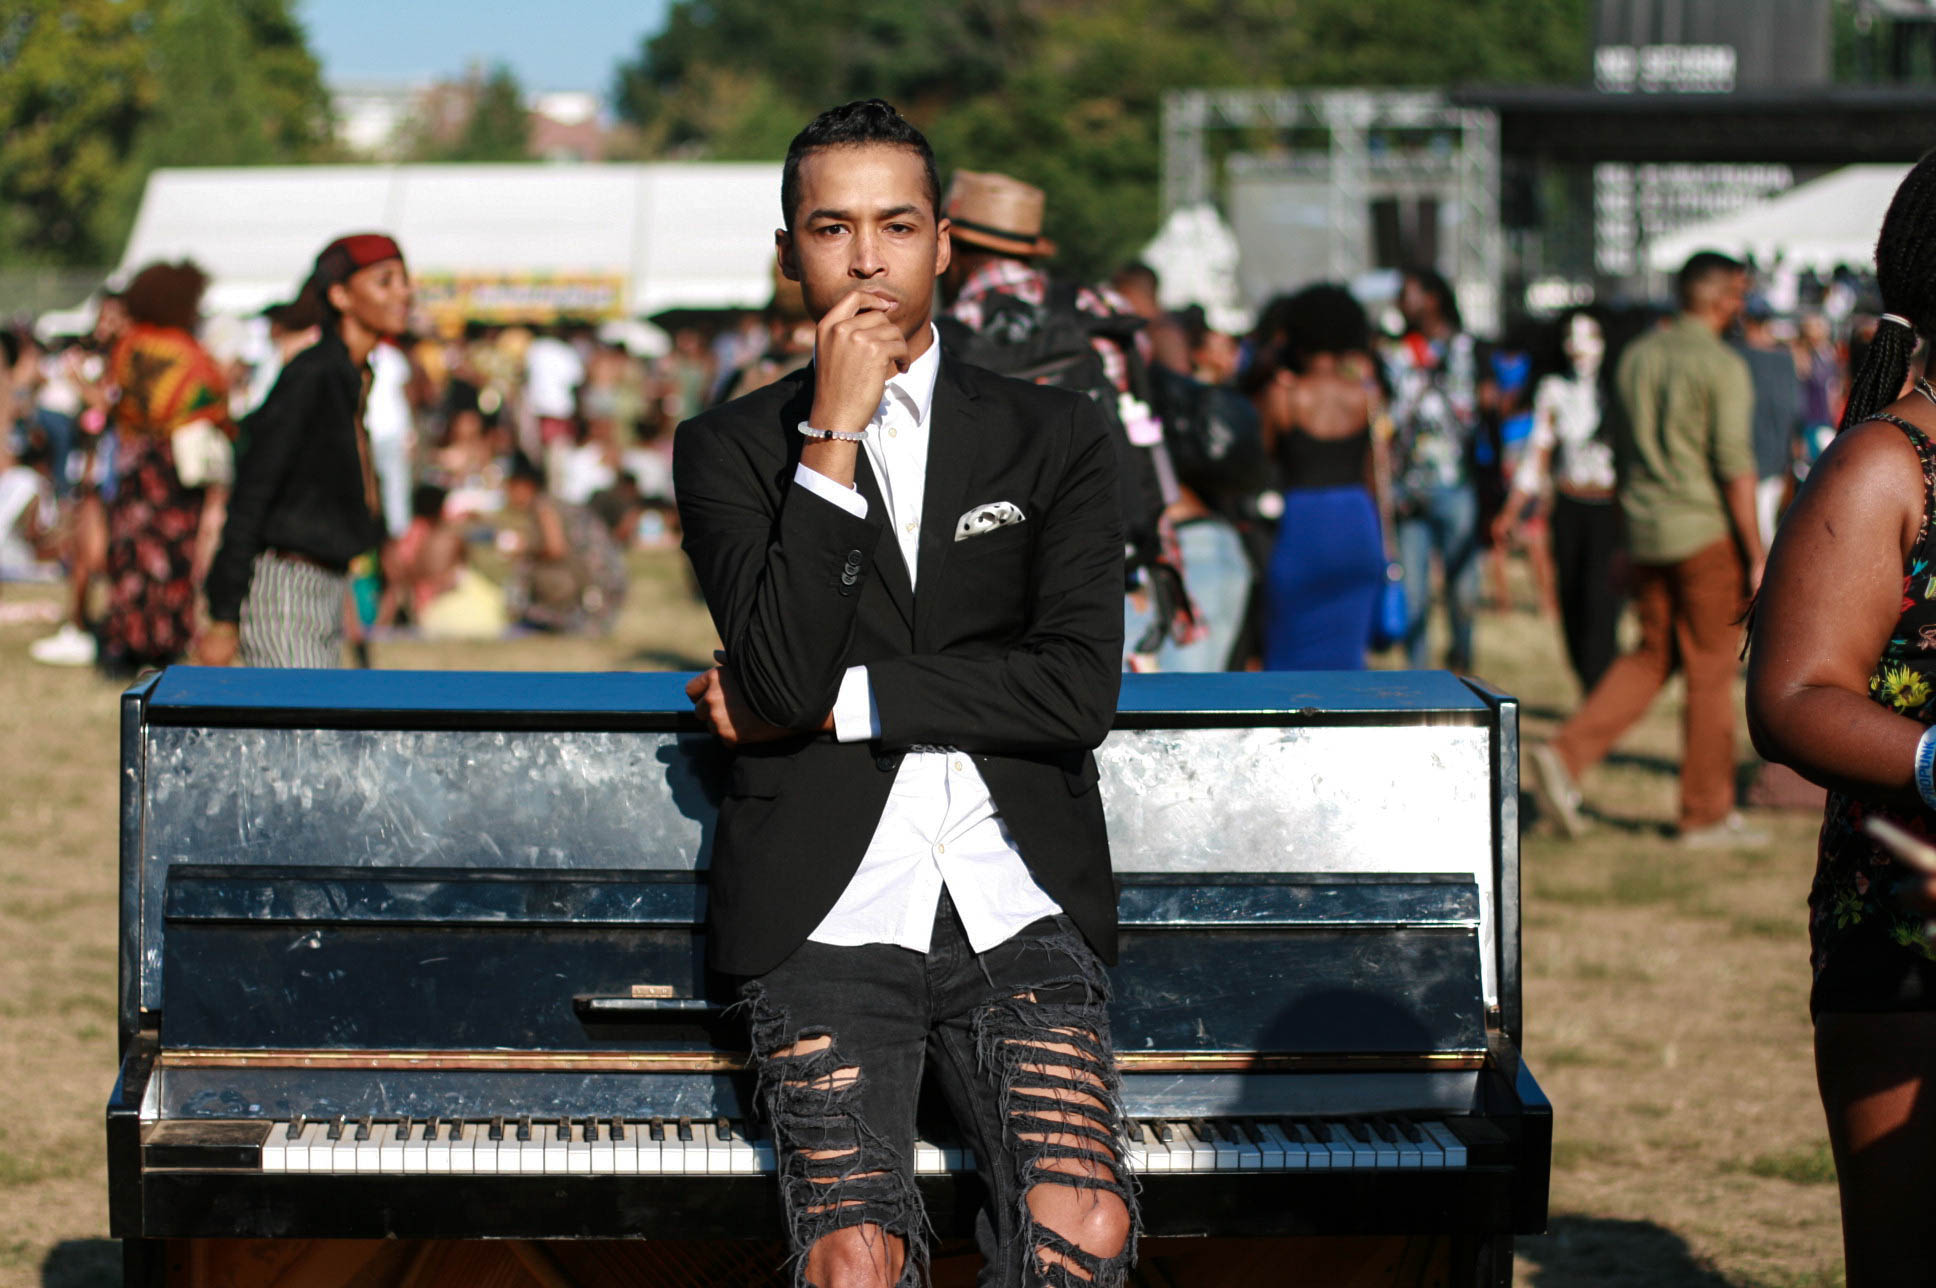 Sir the Baptist at #afropunkfest